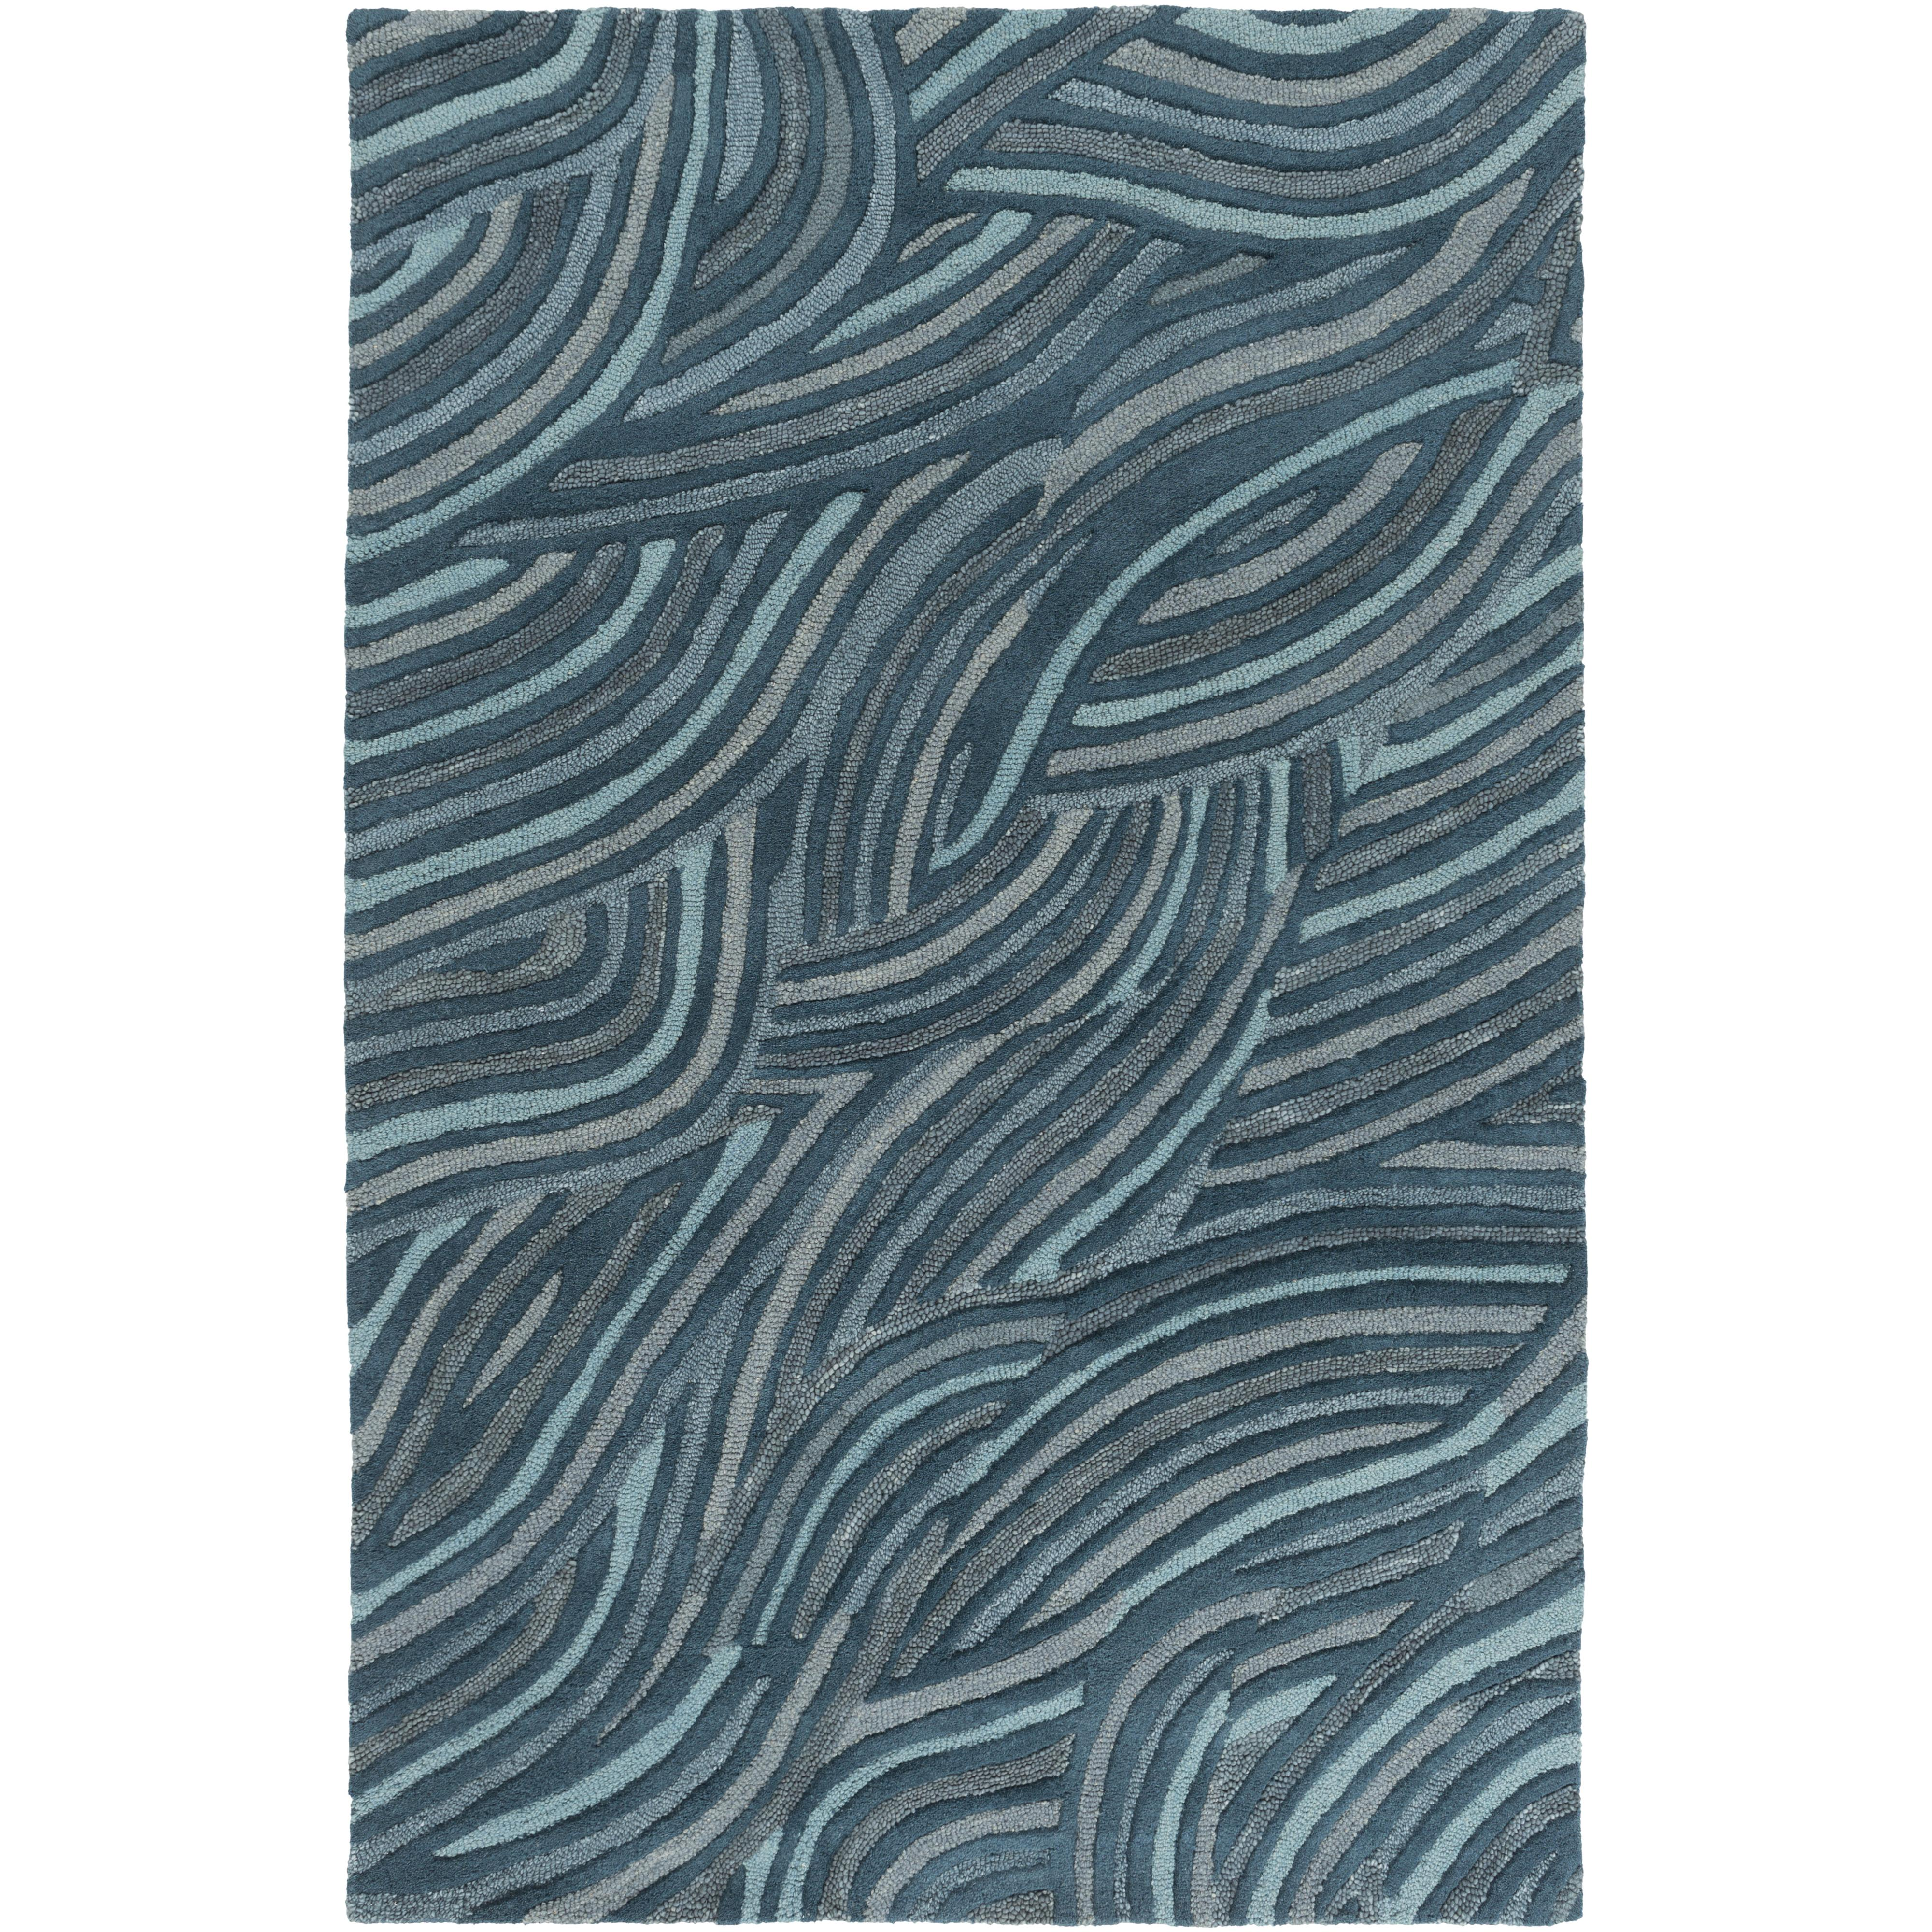 Surya Rugs Perspective 5' x 8' - Item Number: PSV39-58